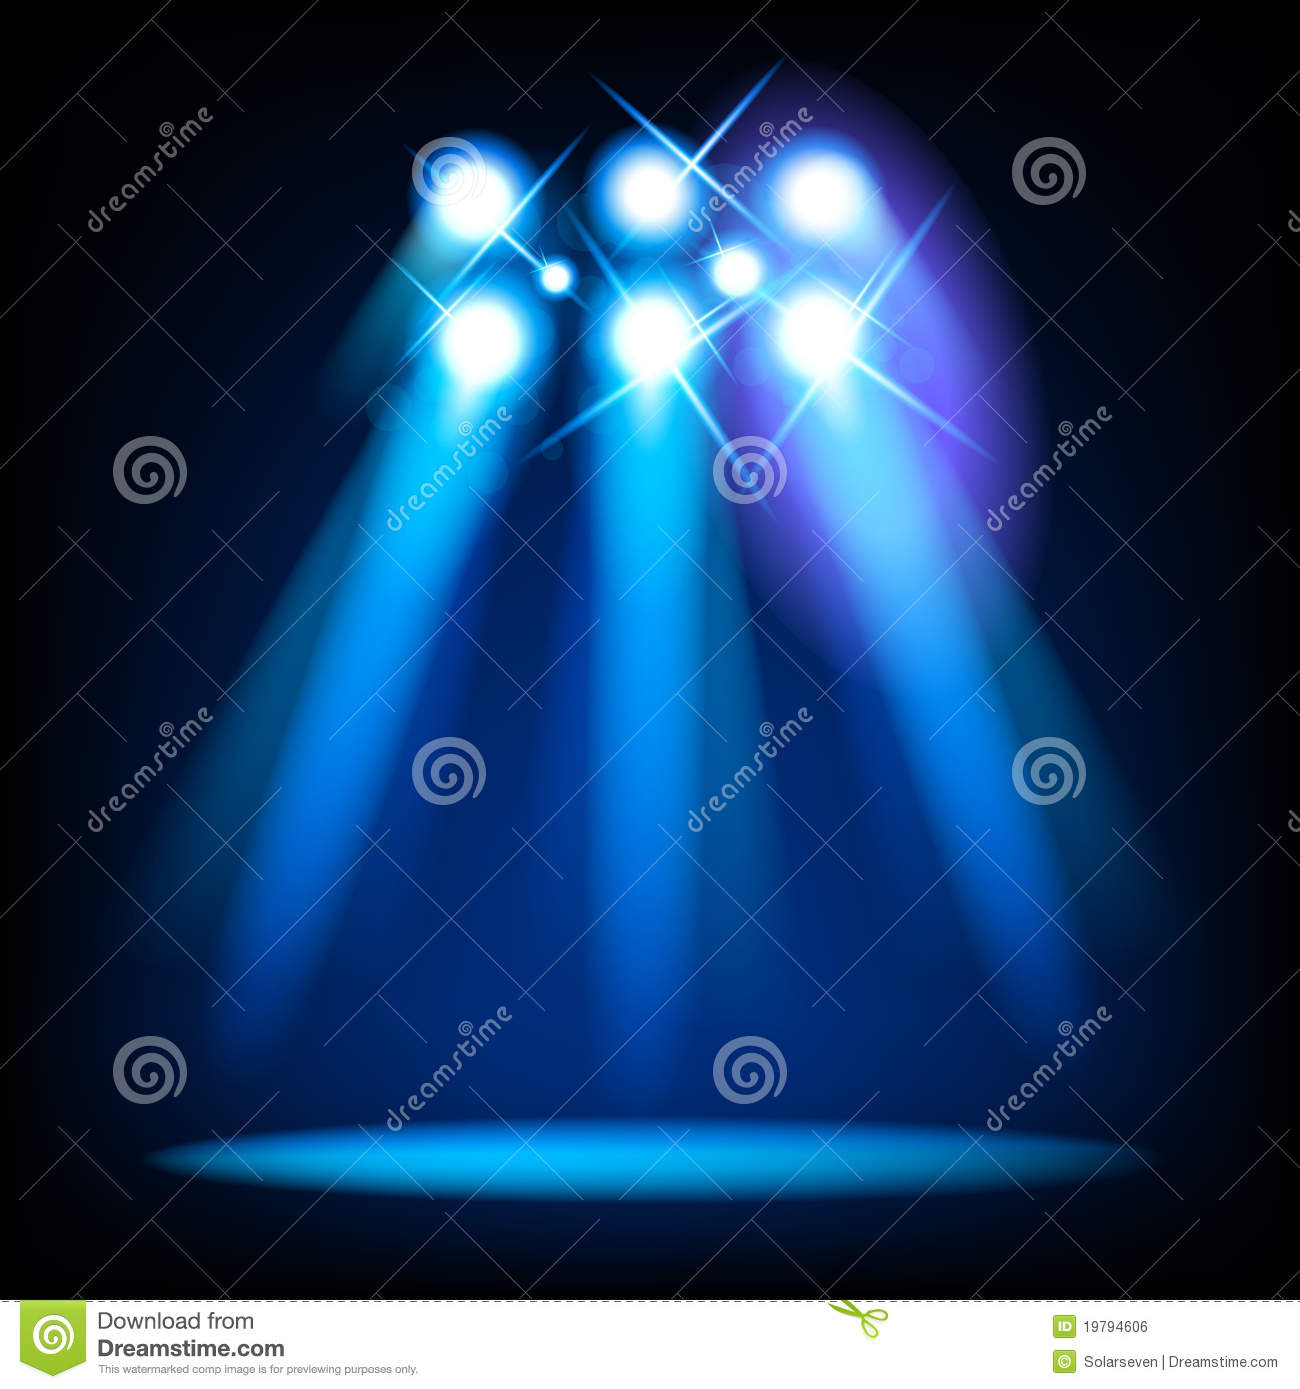 Vector Stage Lights Royalty Free Stock Image - Image: 19794606